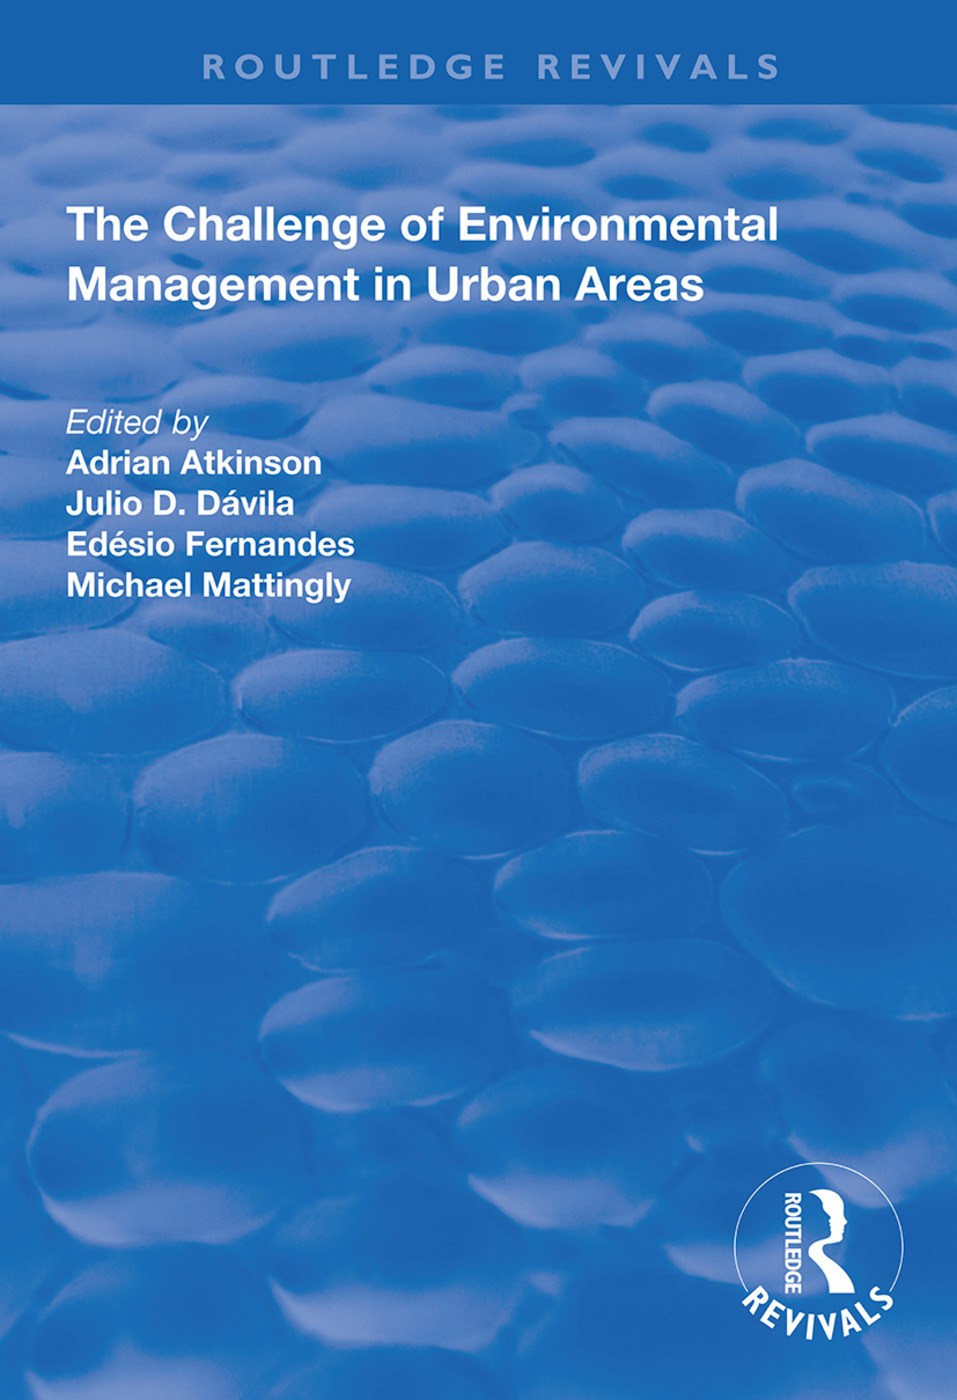 The Challenge of Environmental Management in Urban Areas